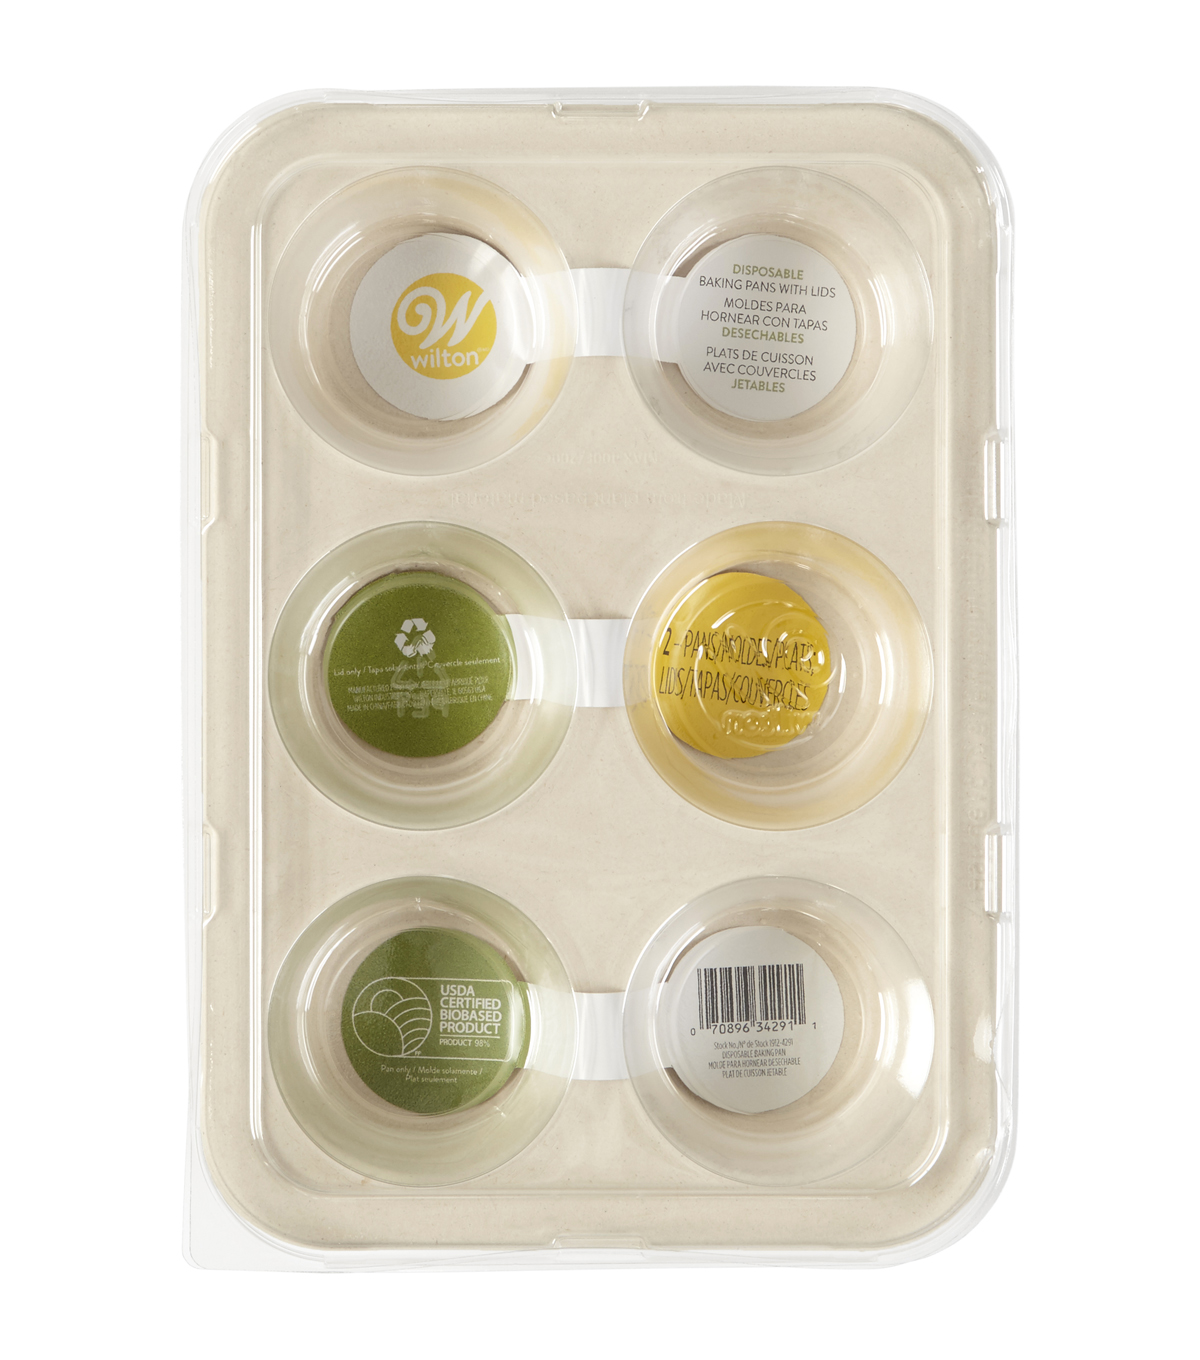 Wilton 2 pk 6-cavity Disposable Muffin Baking Pans with Lids